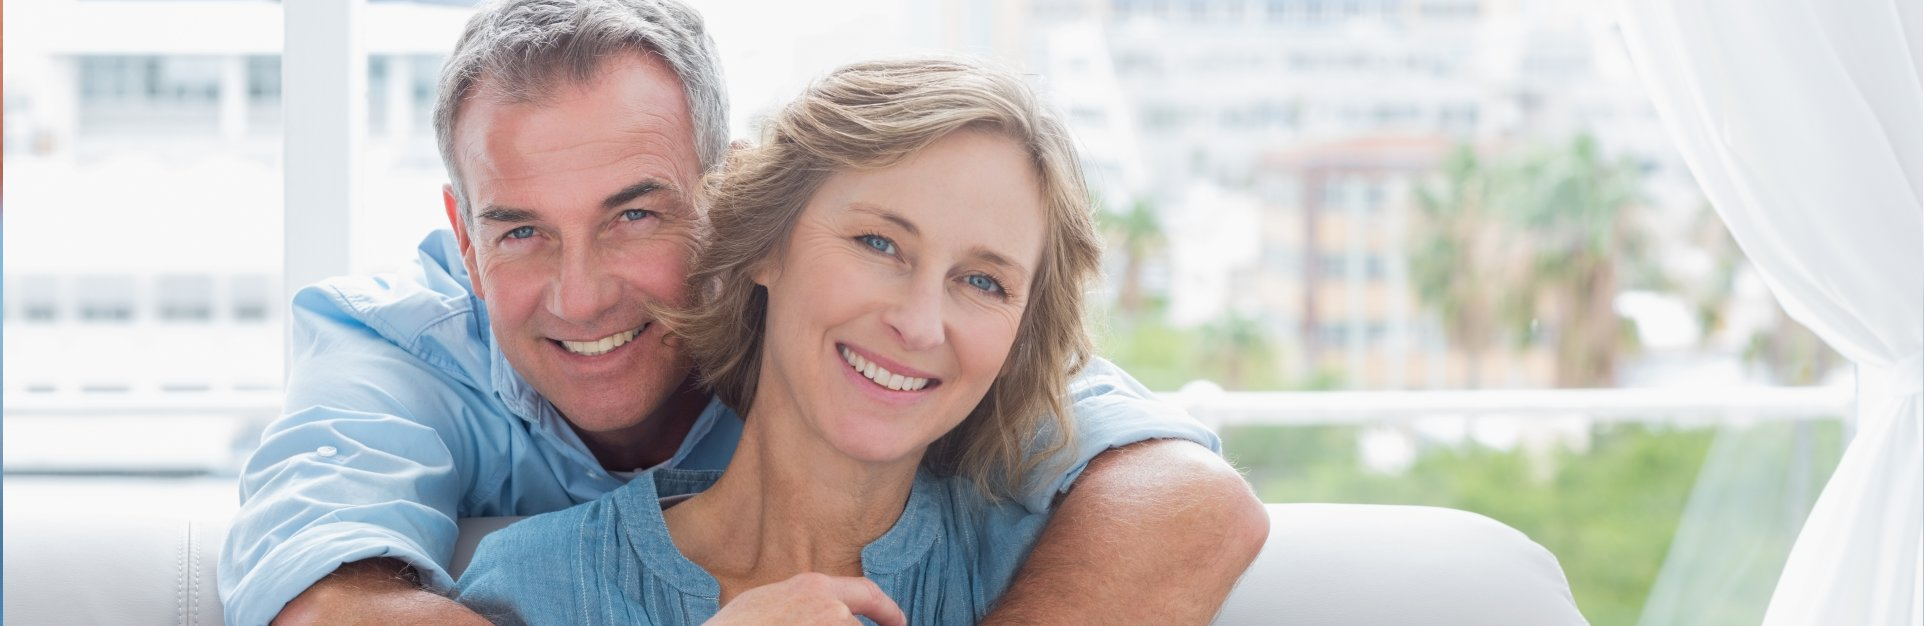 Dental Treatment For Adults